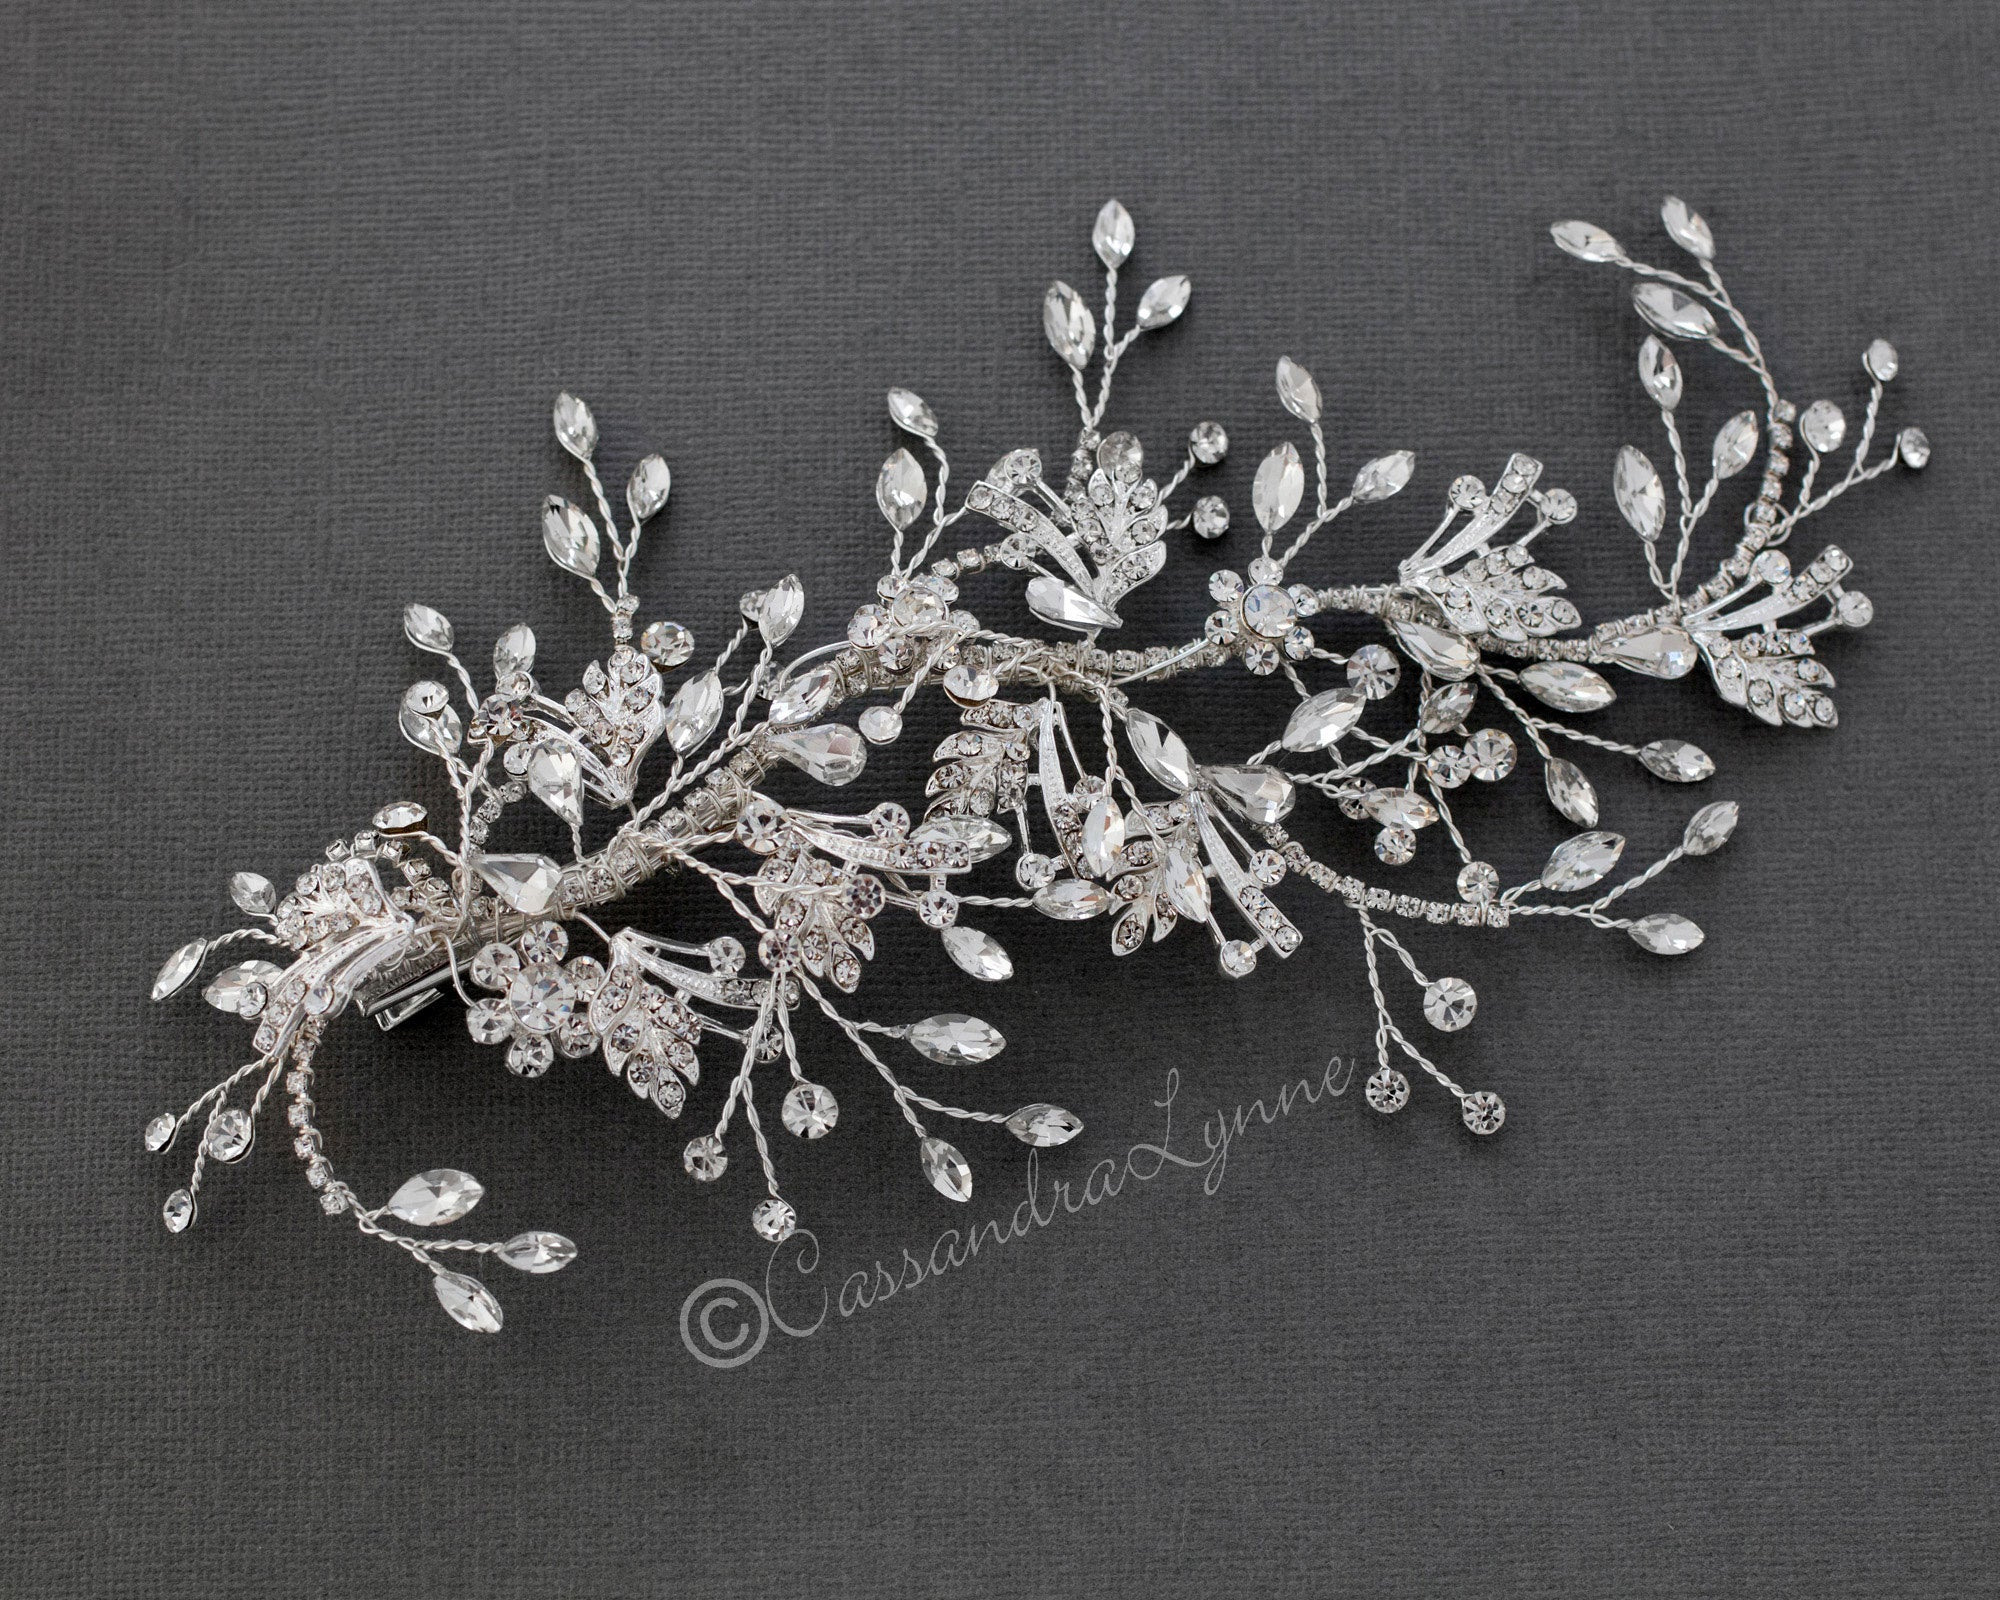 Bridal Headpiece of Pear and Marquise Jewels